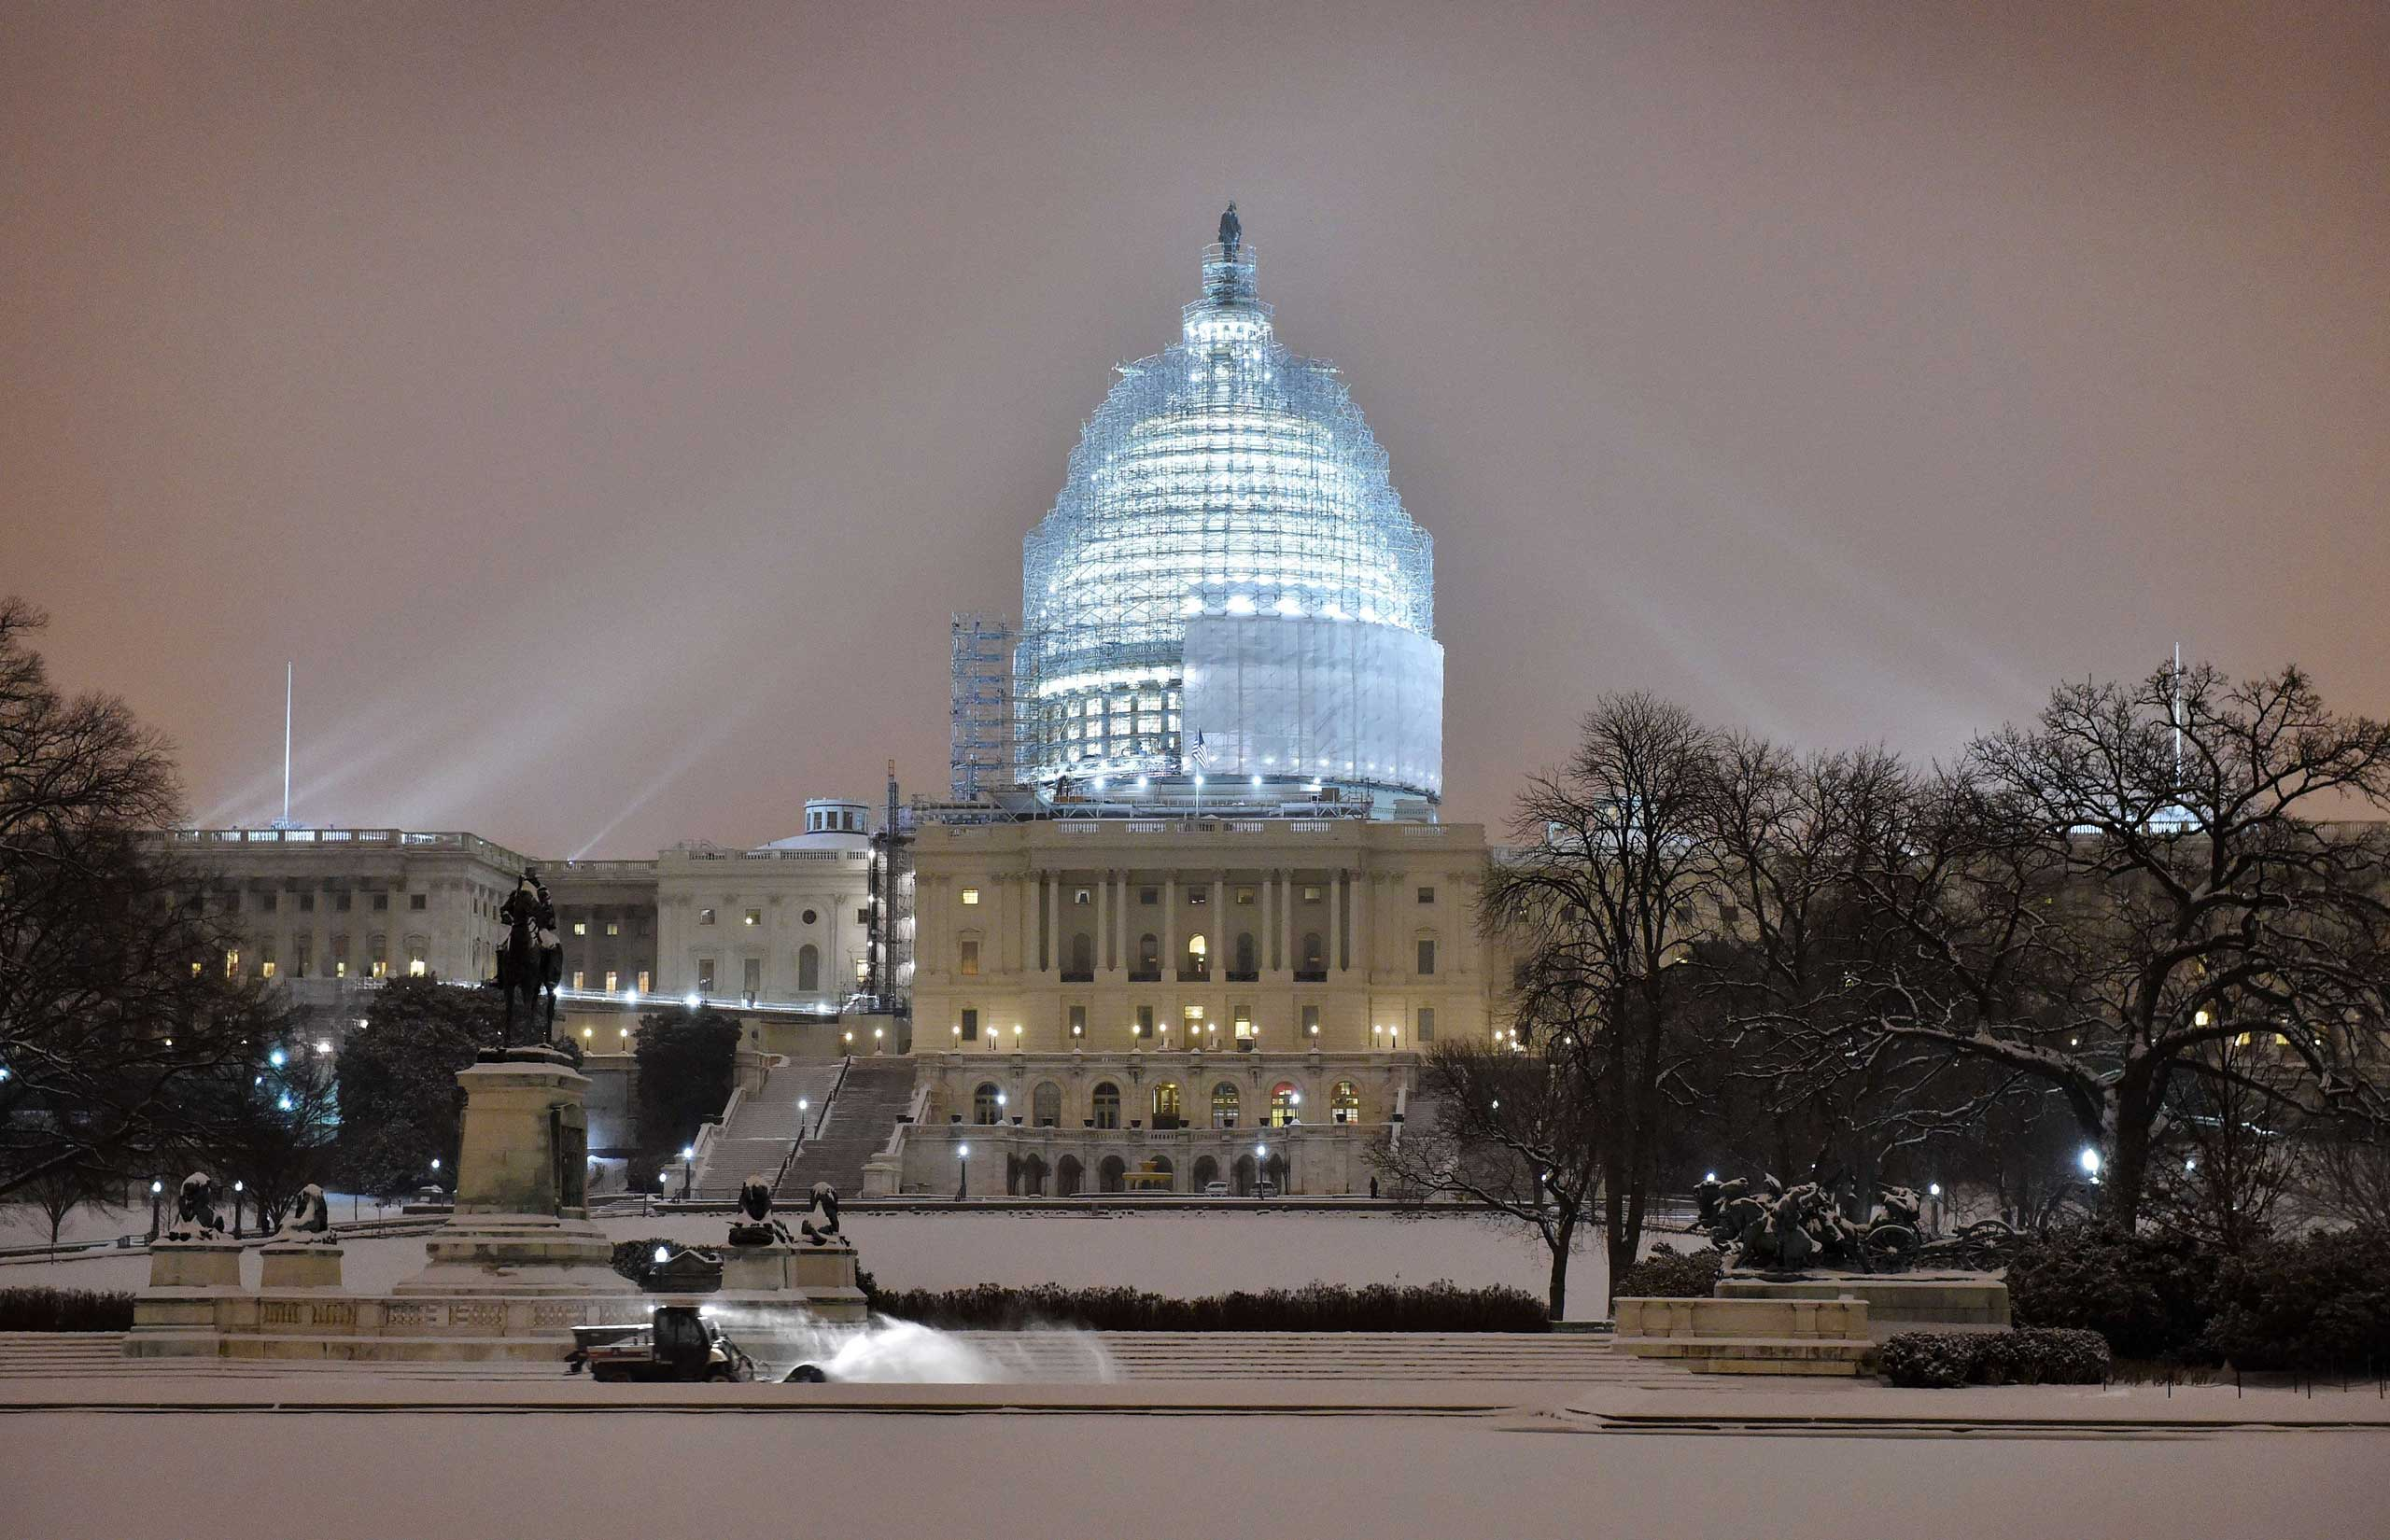 A snow-plough cleans the snow in front of the US Capitol building in Washington on Feb. 16, 2015.